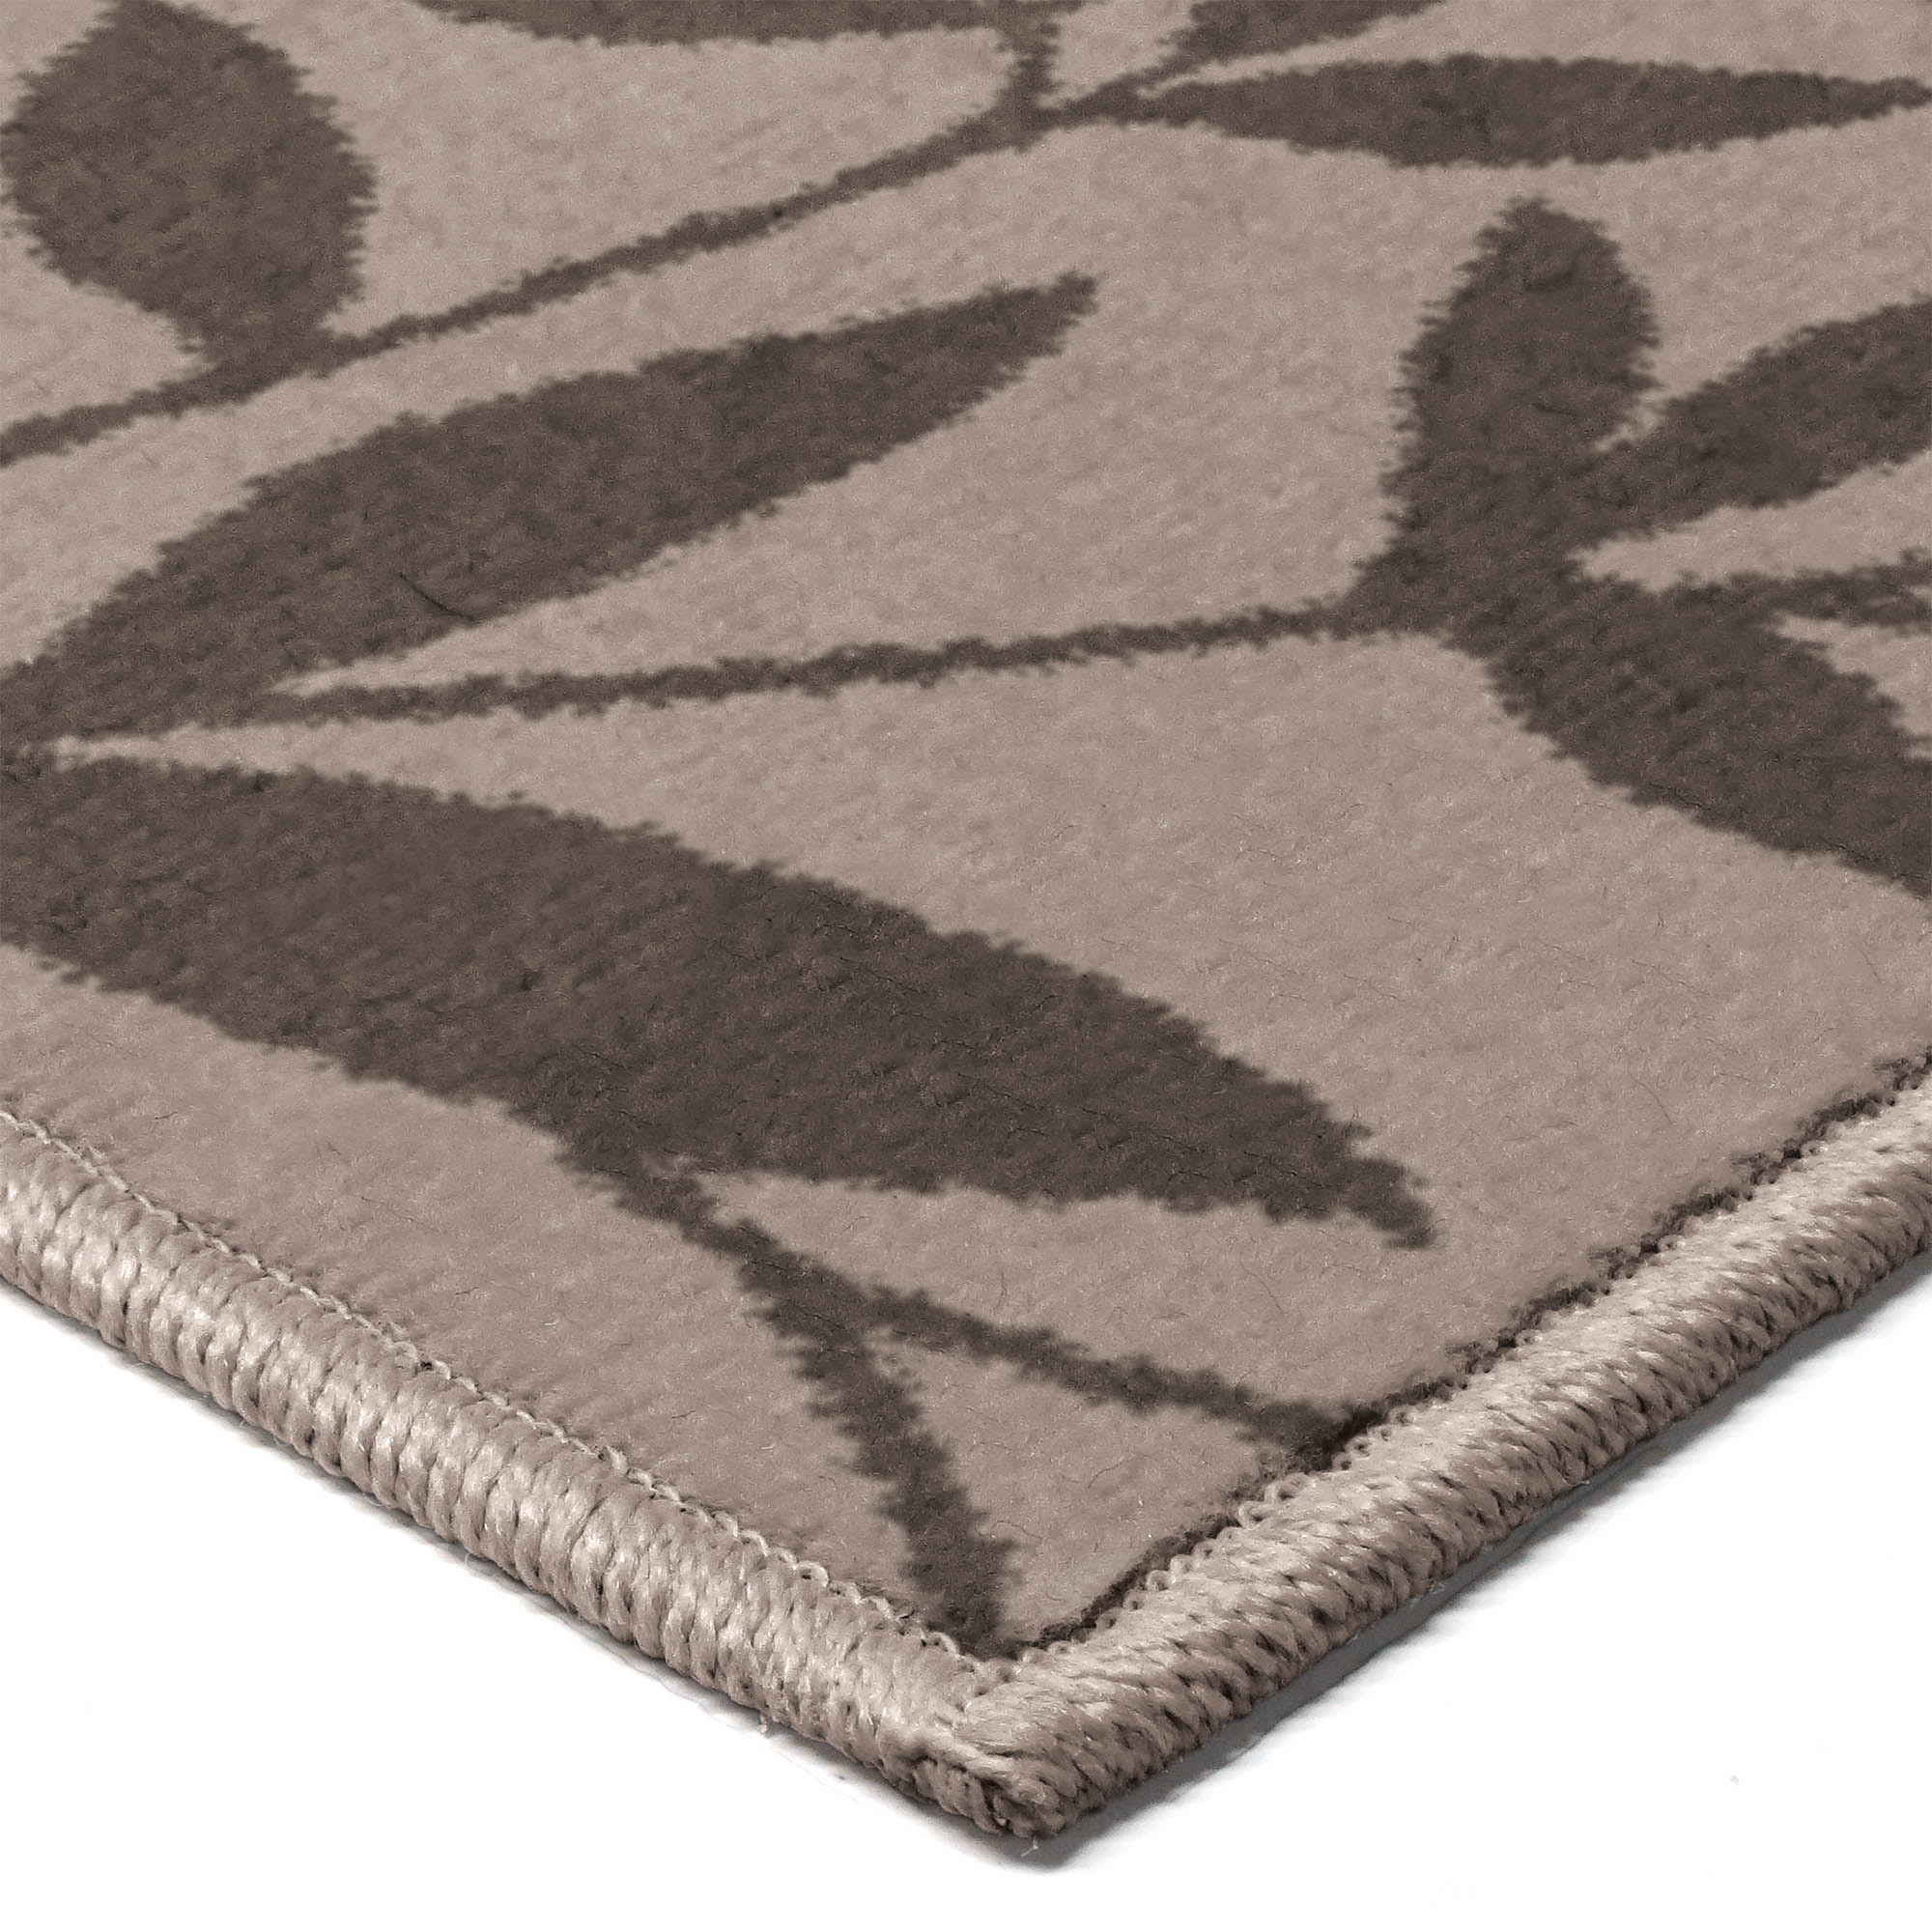 Area rug runner fleur leaf flower modern design home beige - Better homes and gardens iron fleur area rug ...